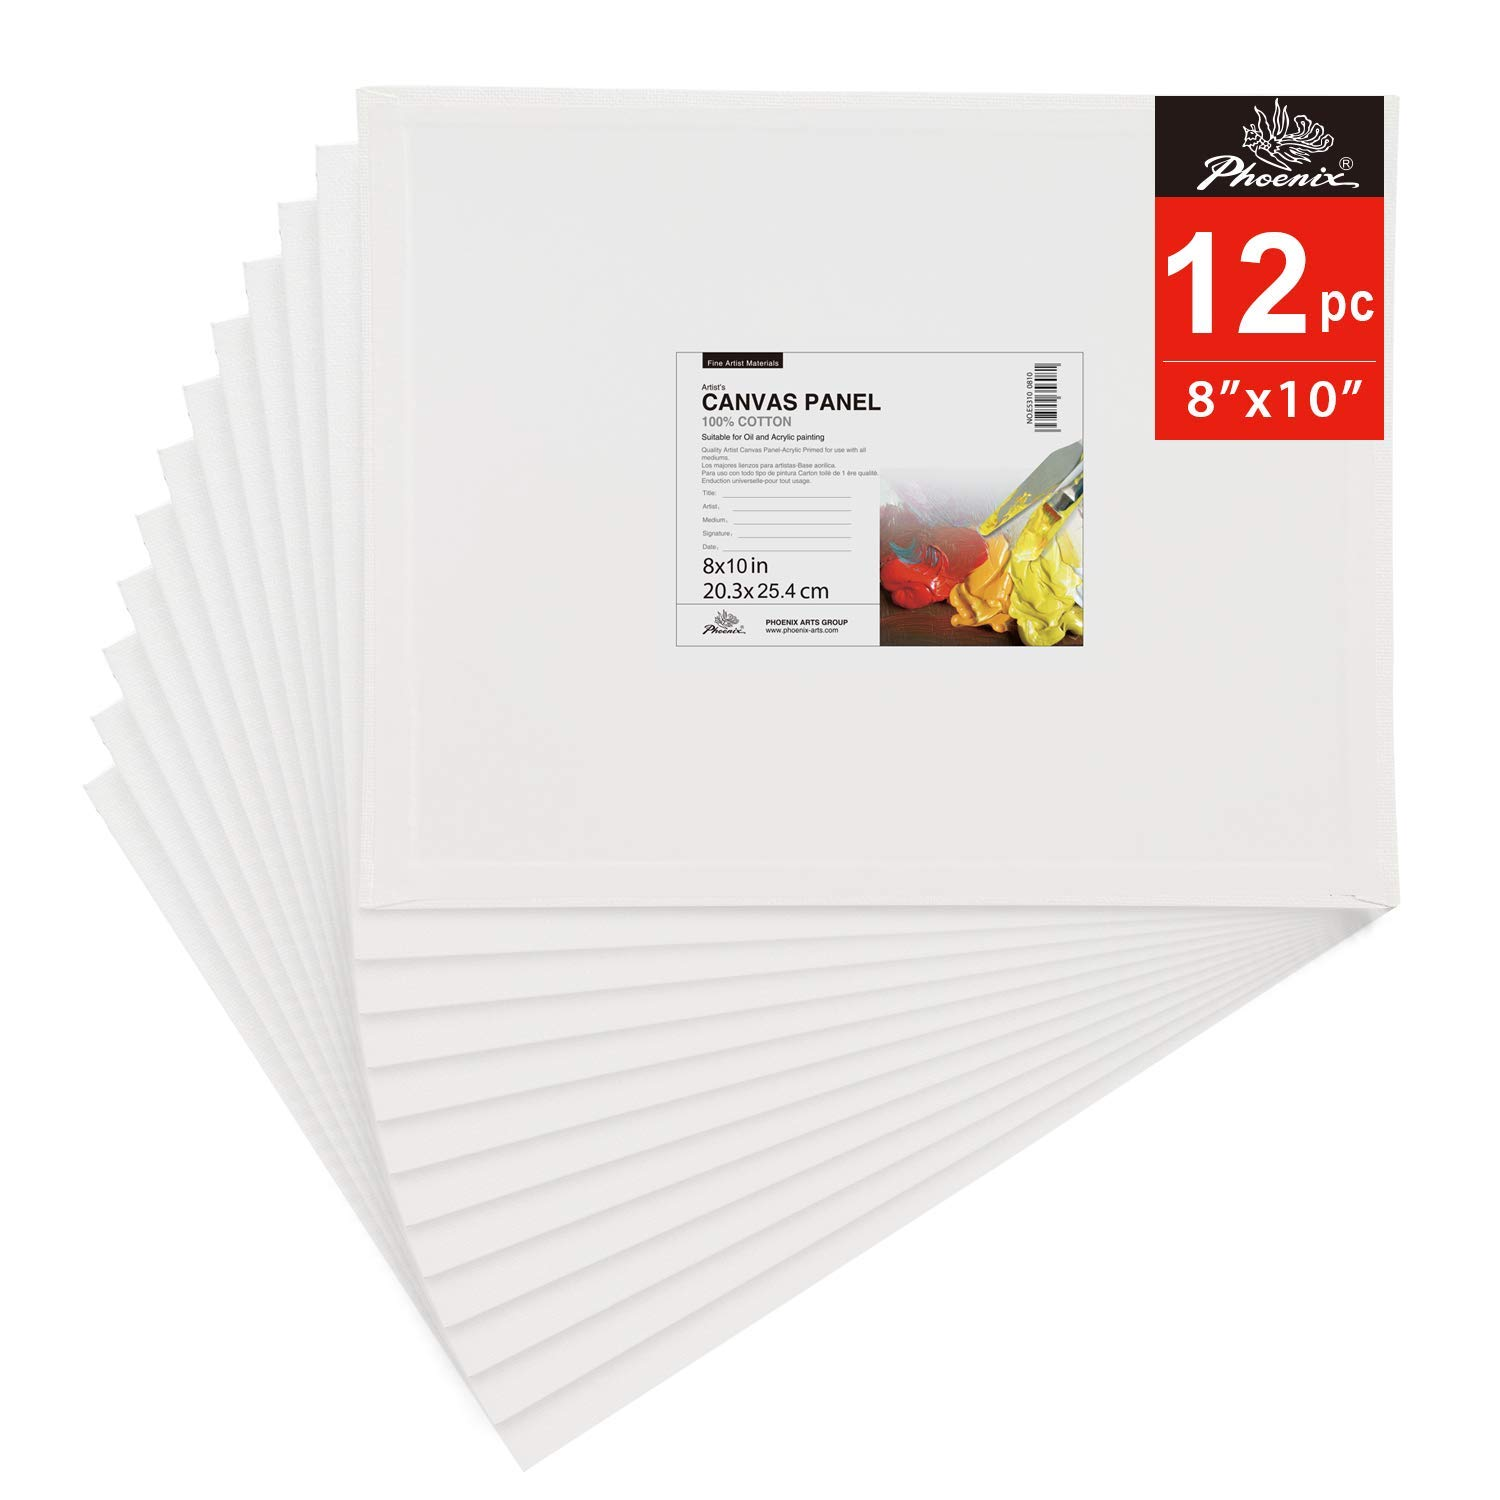 PHOENIX Painting Canvas Panel Boards - 8x10 Inch / 12 Pack - 1/7 Inch Deep Super Value Pack for Oil & Acrylic Paint by PHOENIX